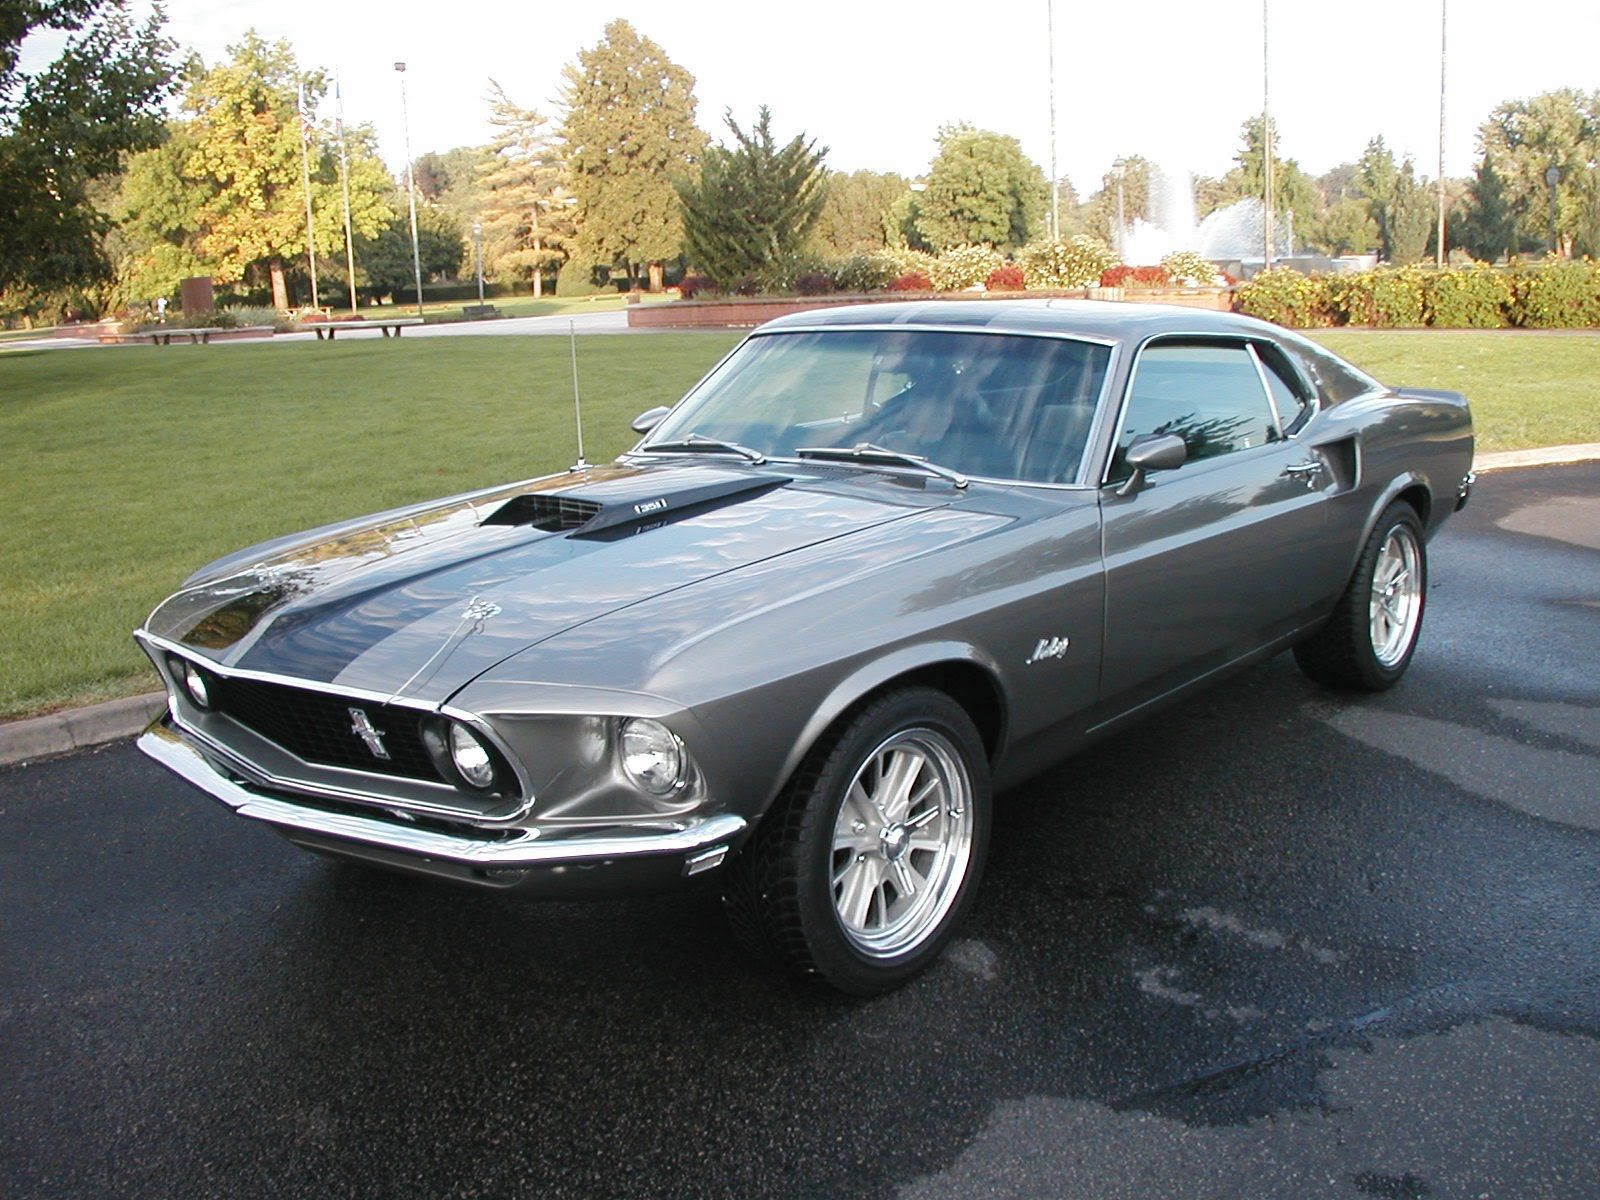 1969 Ford Mustang Fastback Restoration Slideshow Start To Finish